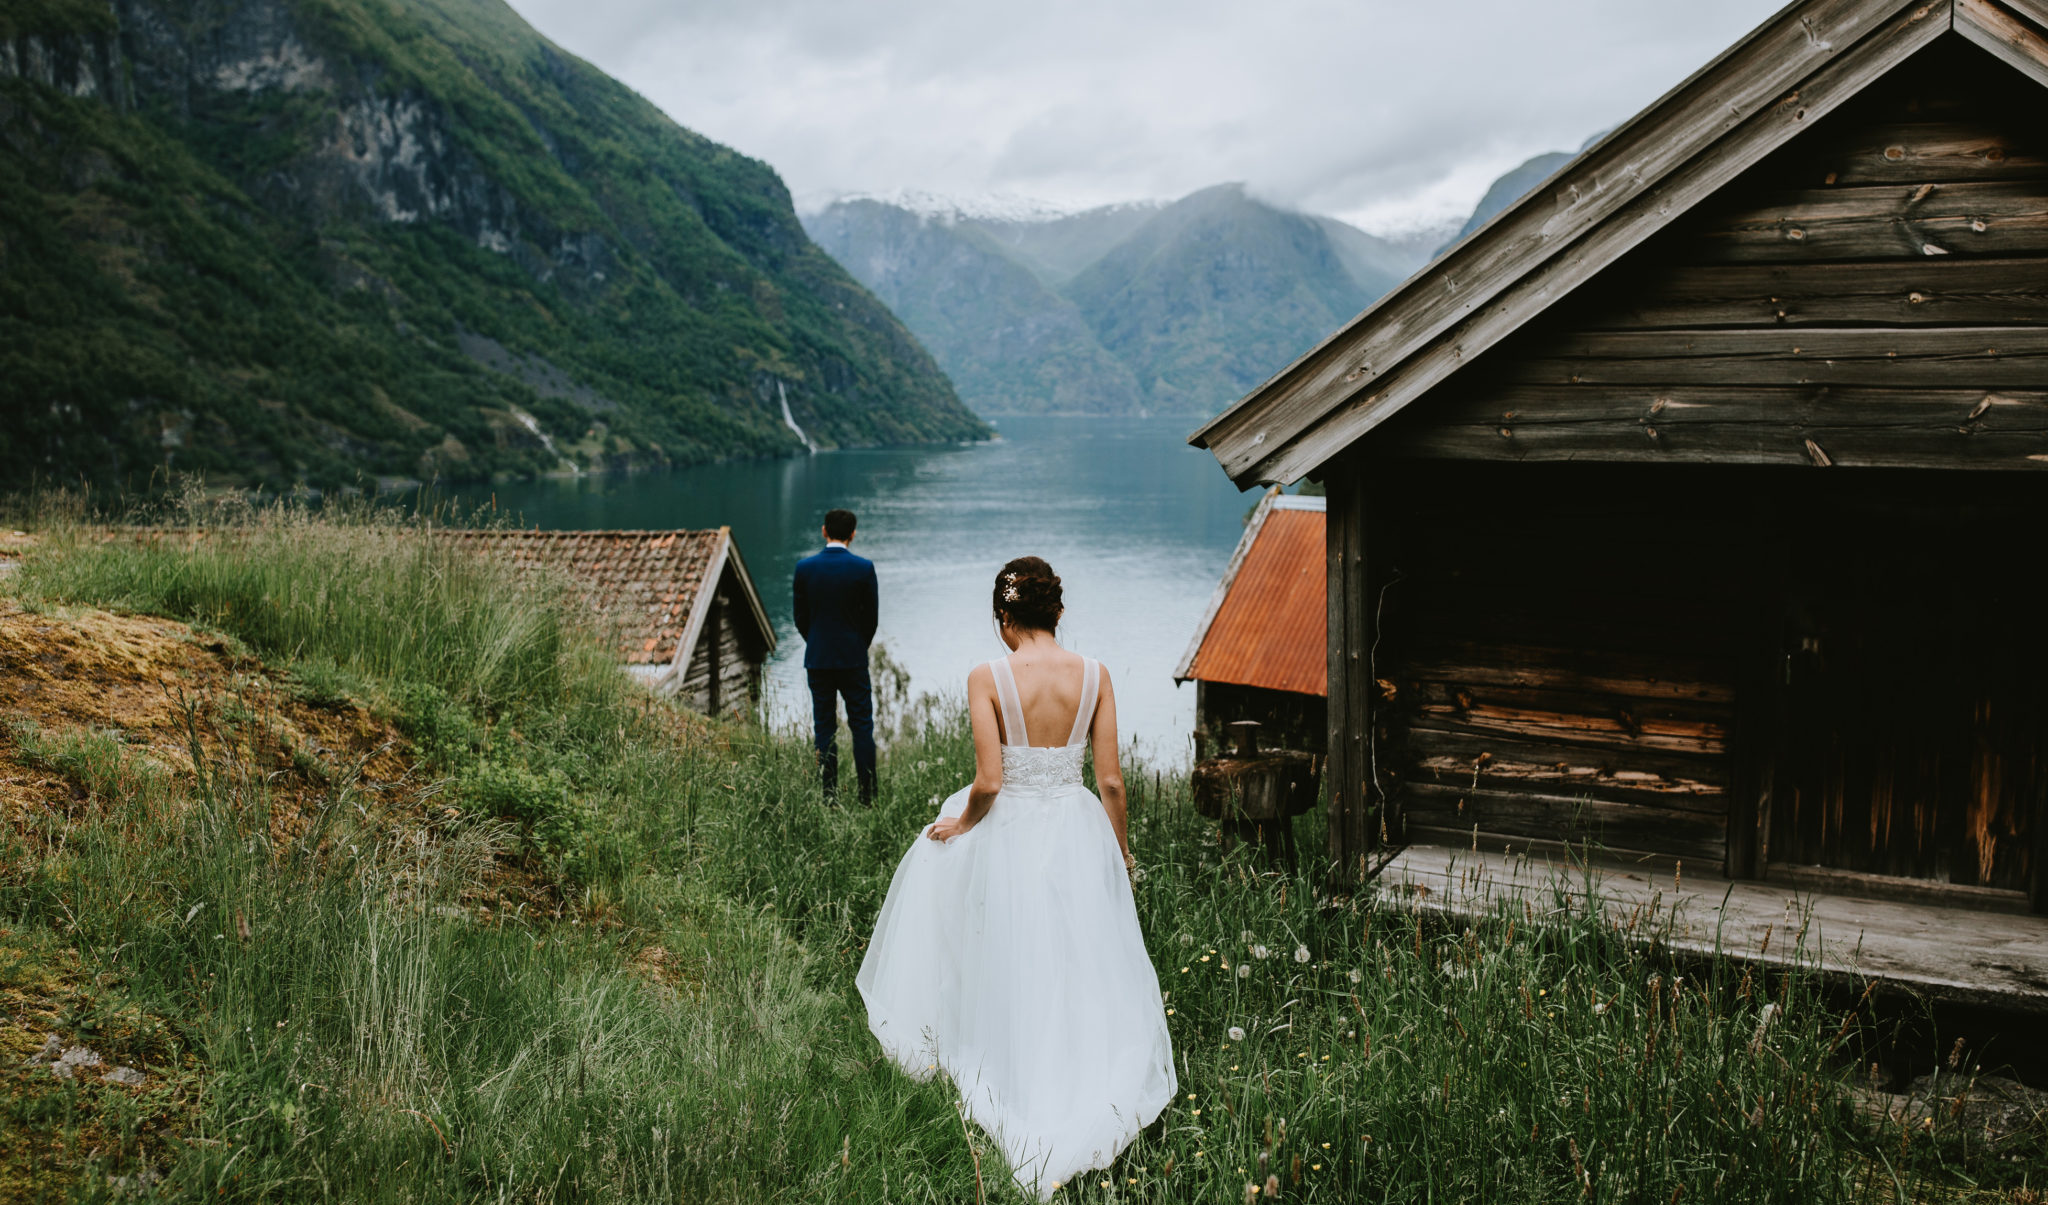 Otternes bydgetun ottogarden aurland flåm Norway elopement wedding photographer